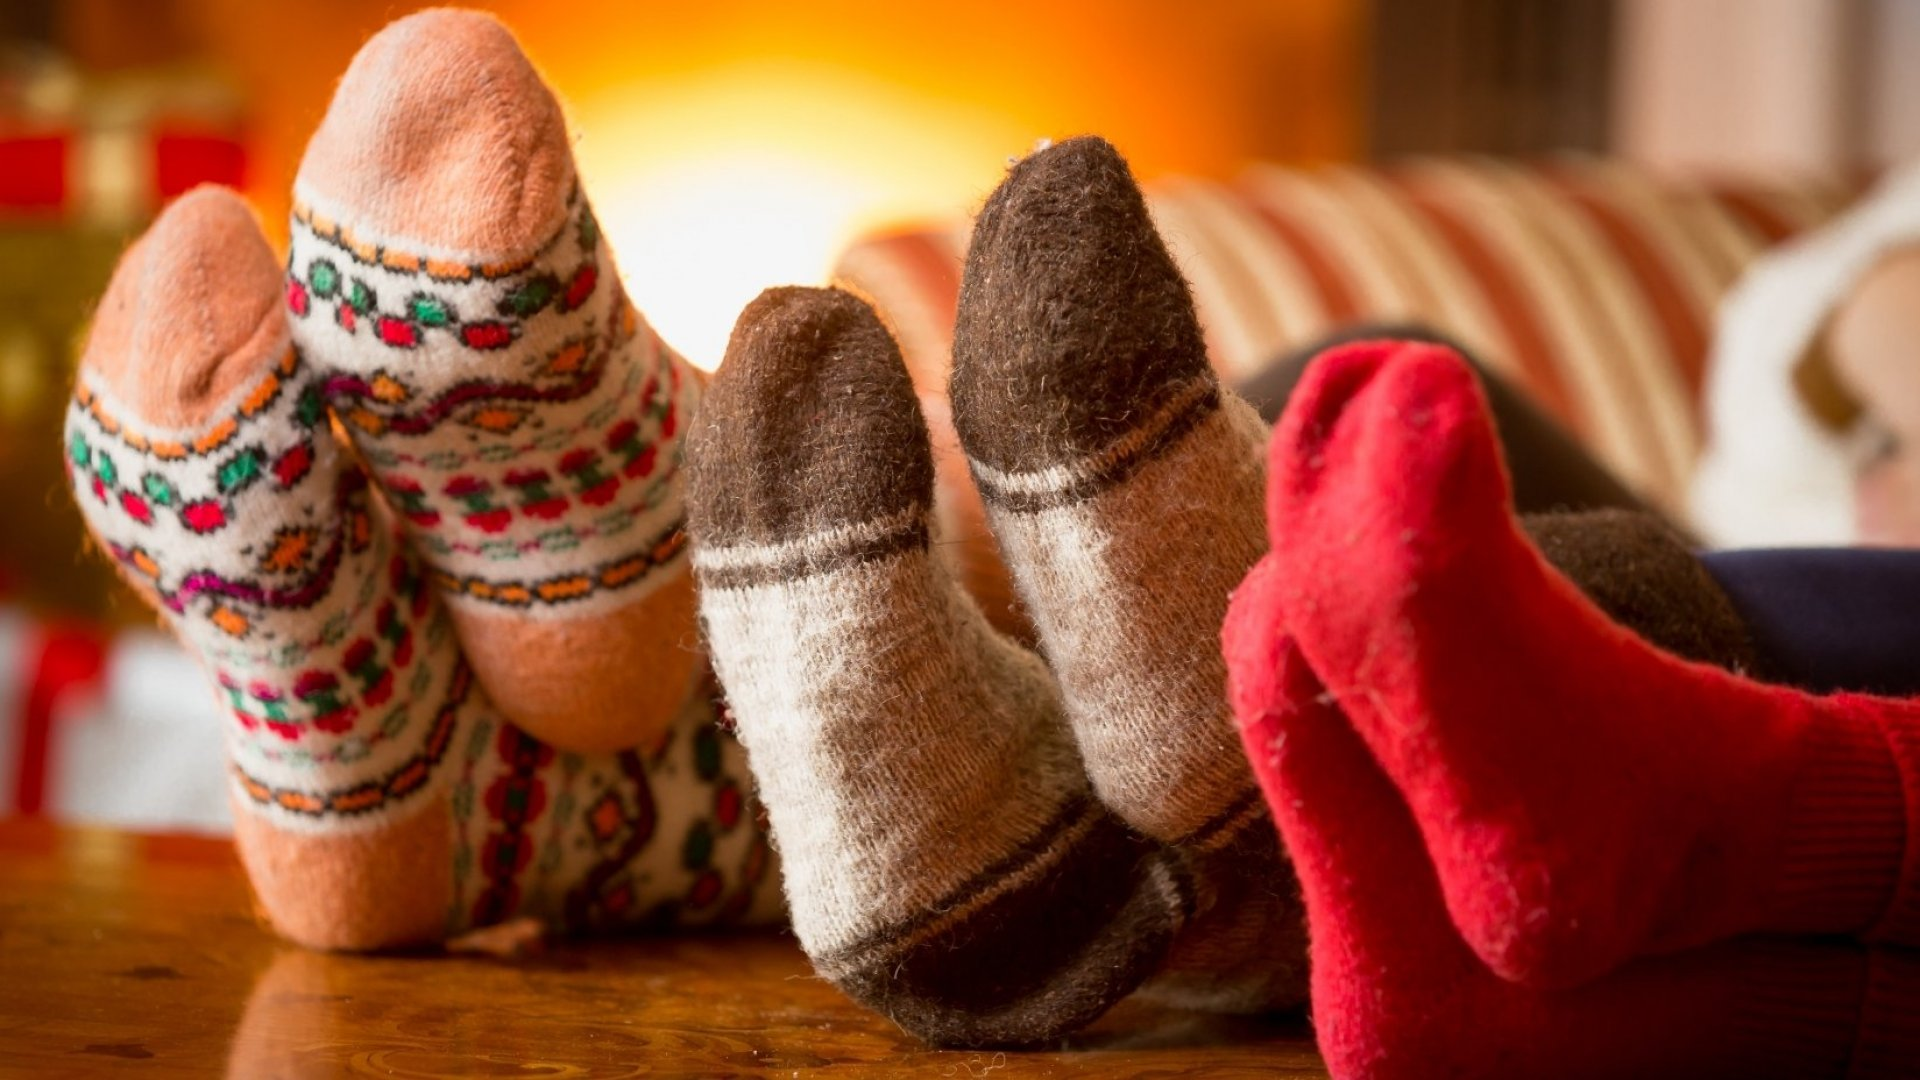 How to Guiltlessly Enjoy the Holidays With Time Off From Work